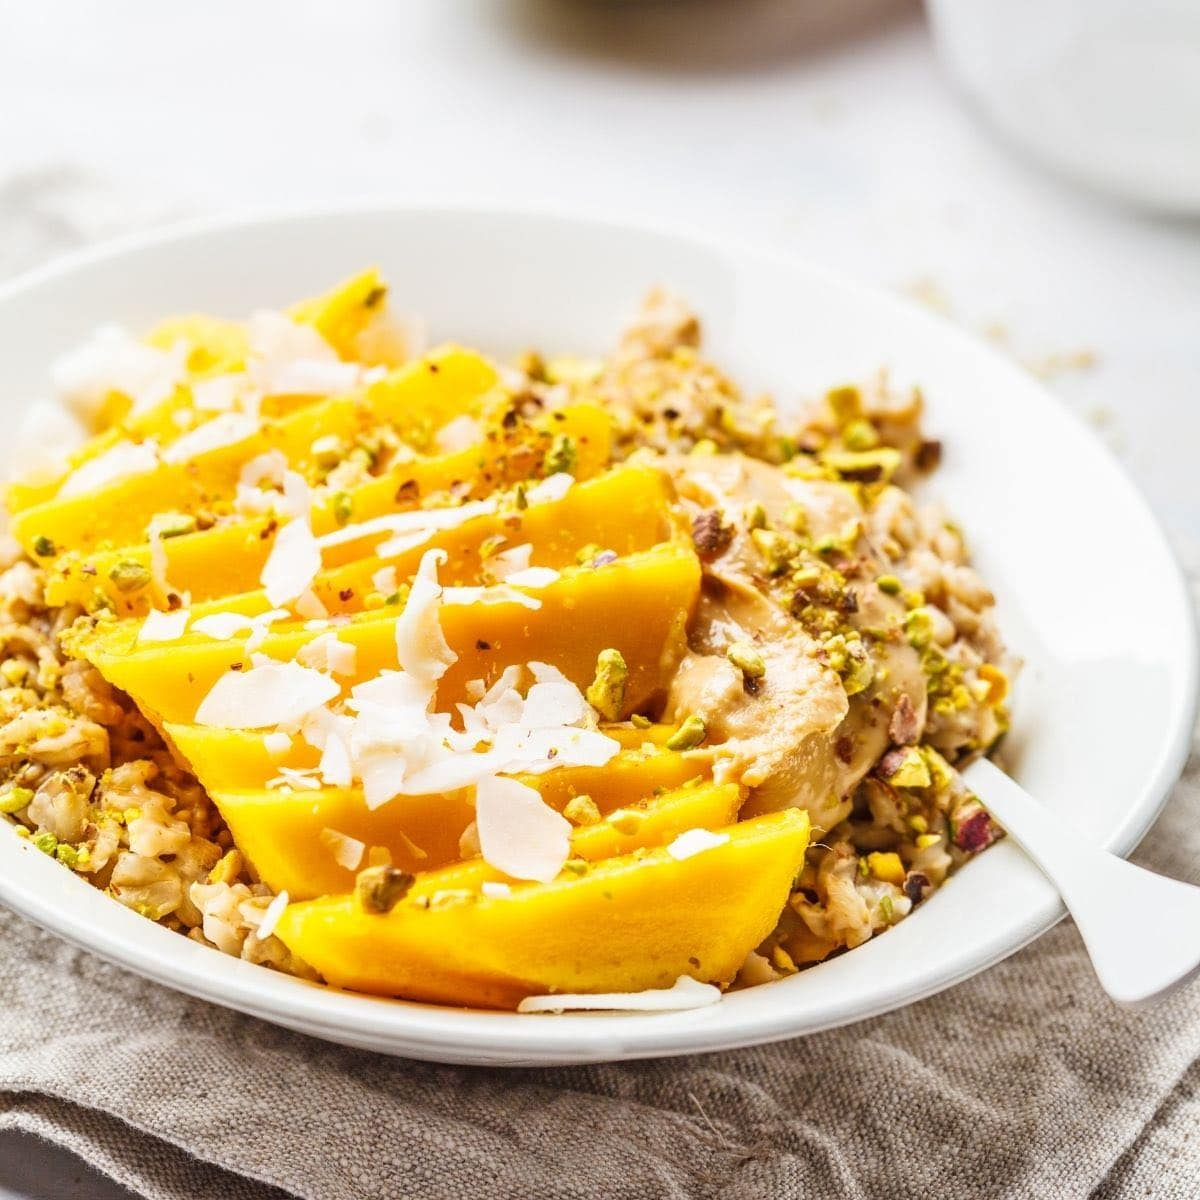 Bowl of oatmeal with mango slices and coconut.